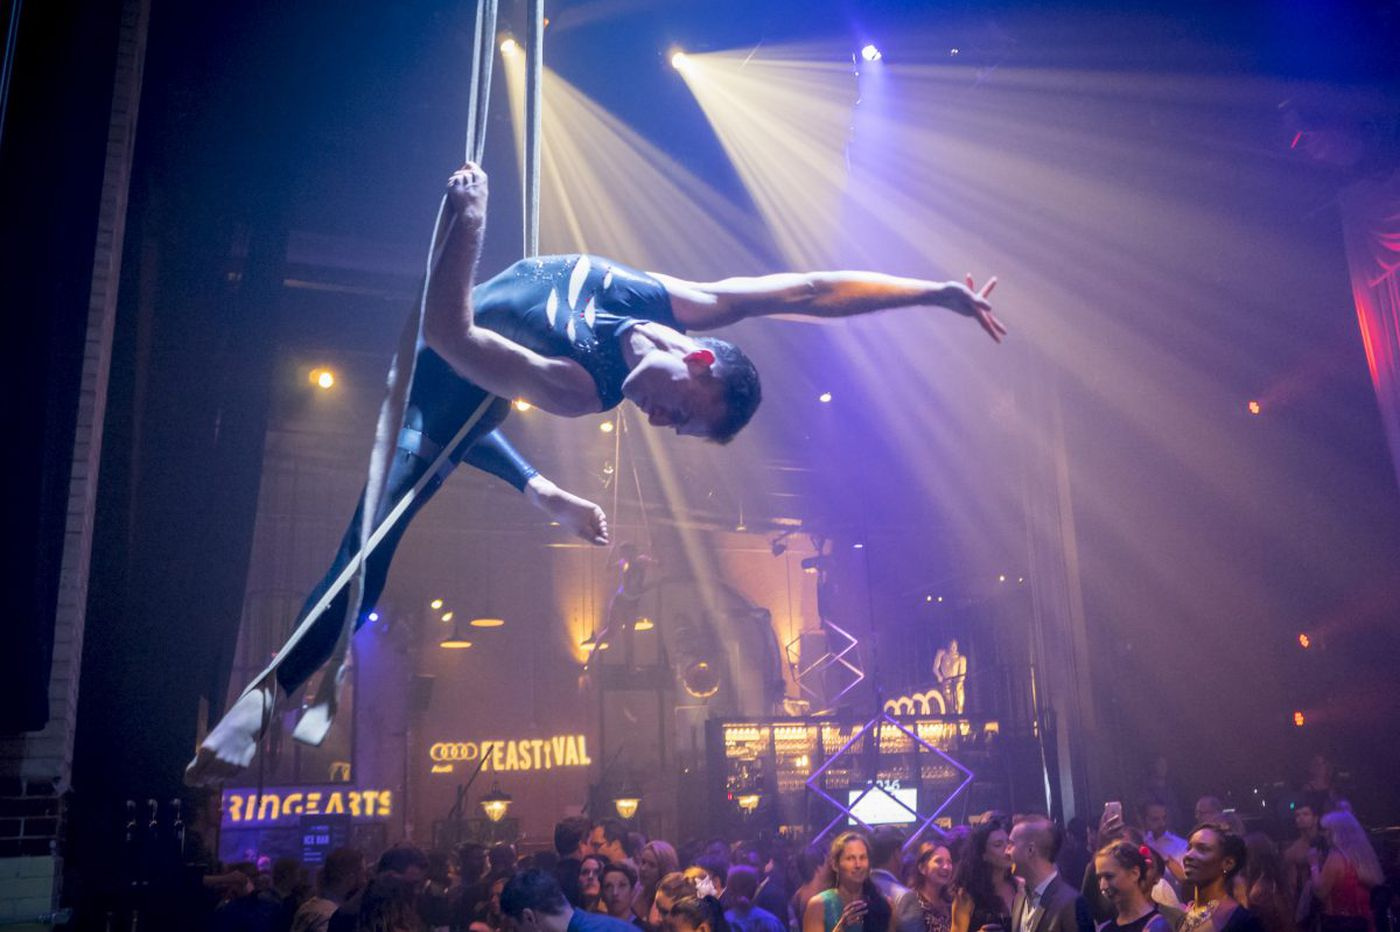 Philly is suddenly full of circus options, including a daring new 5-day festival